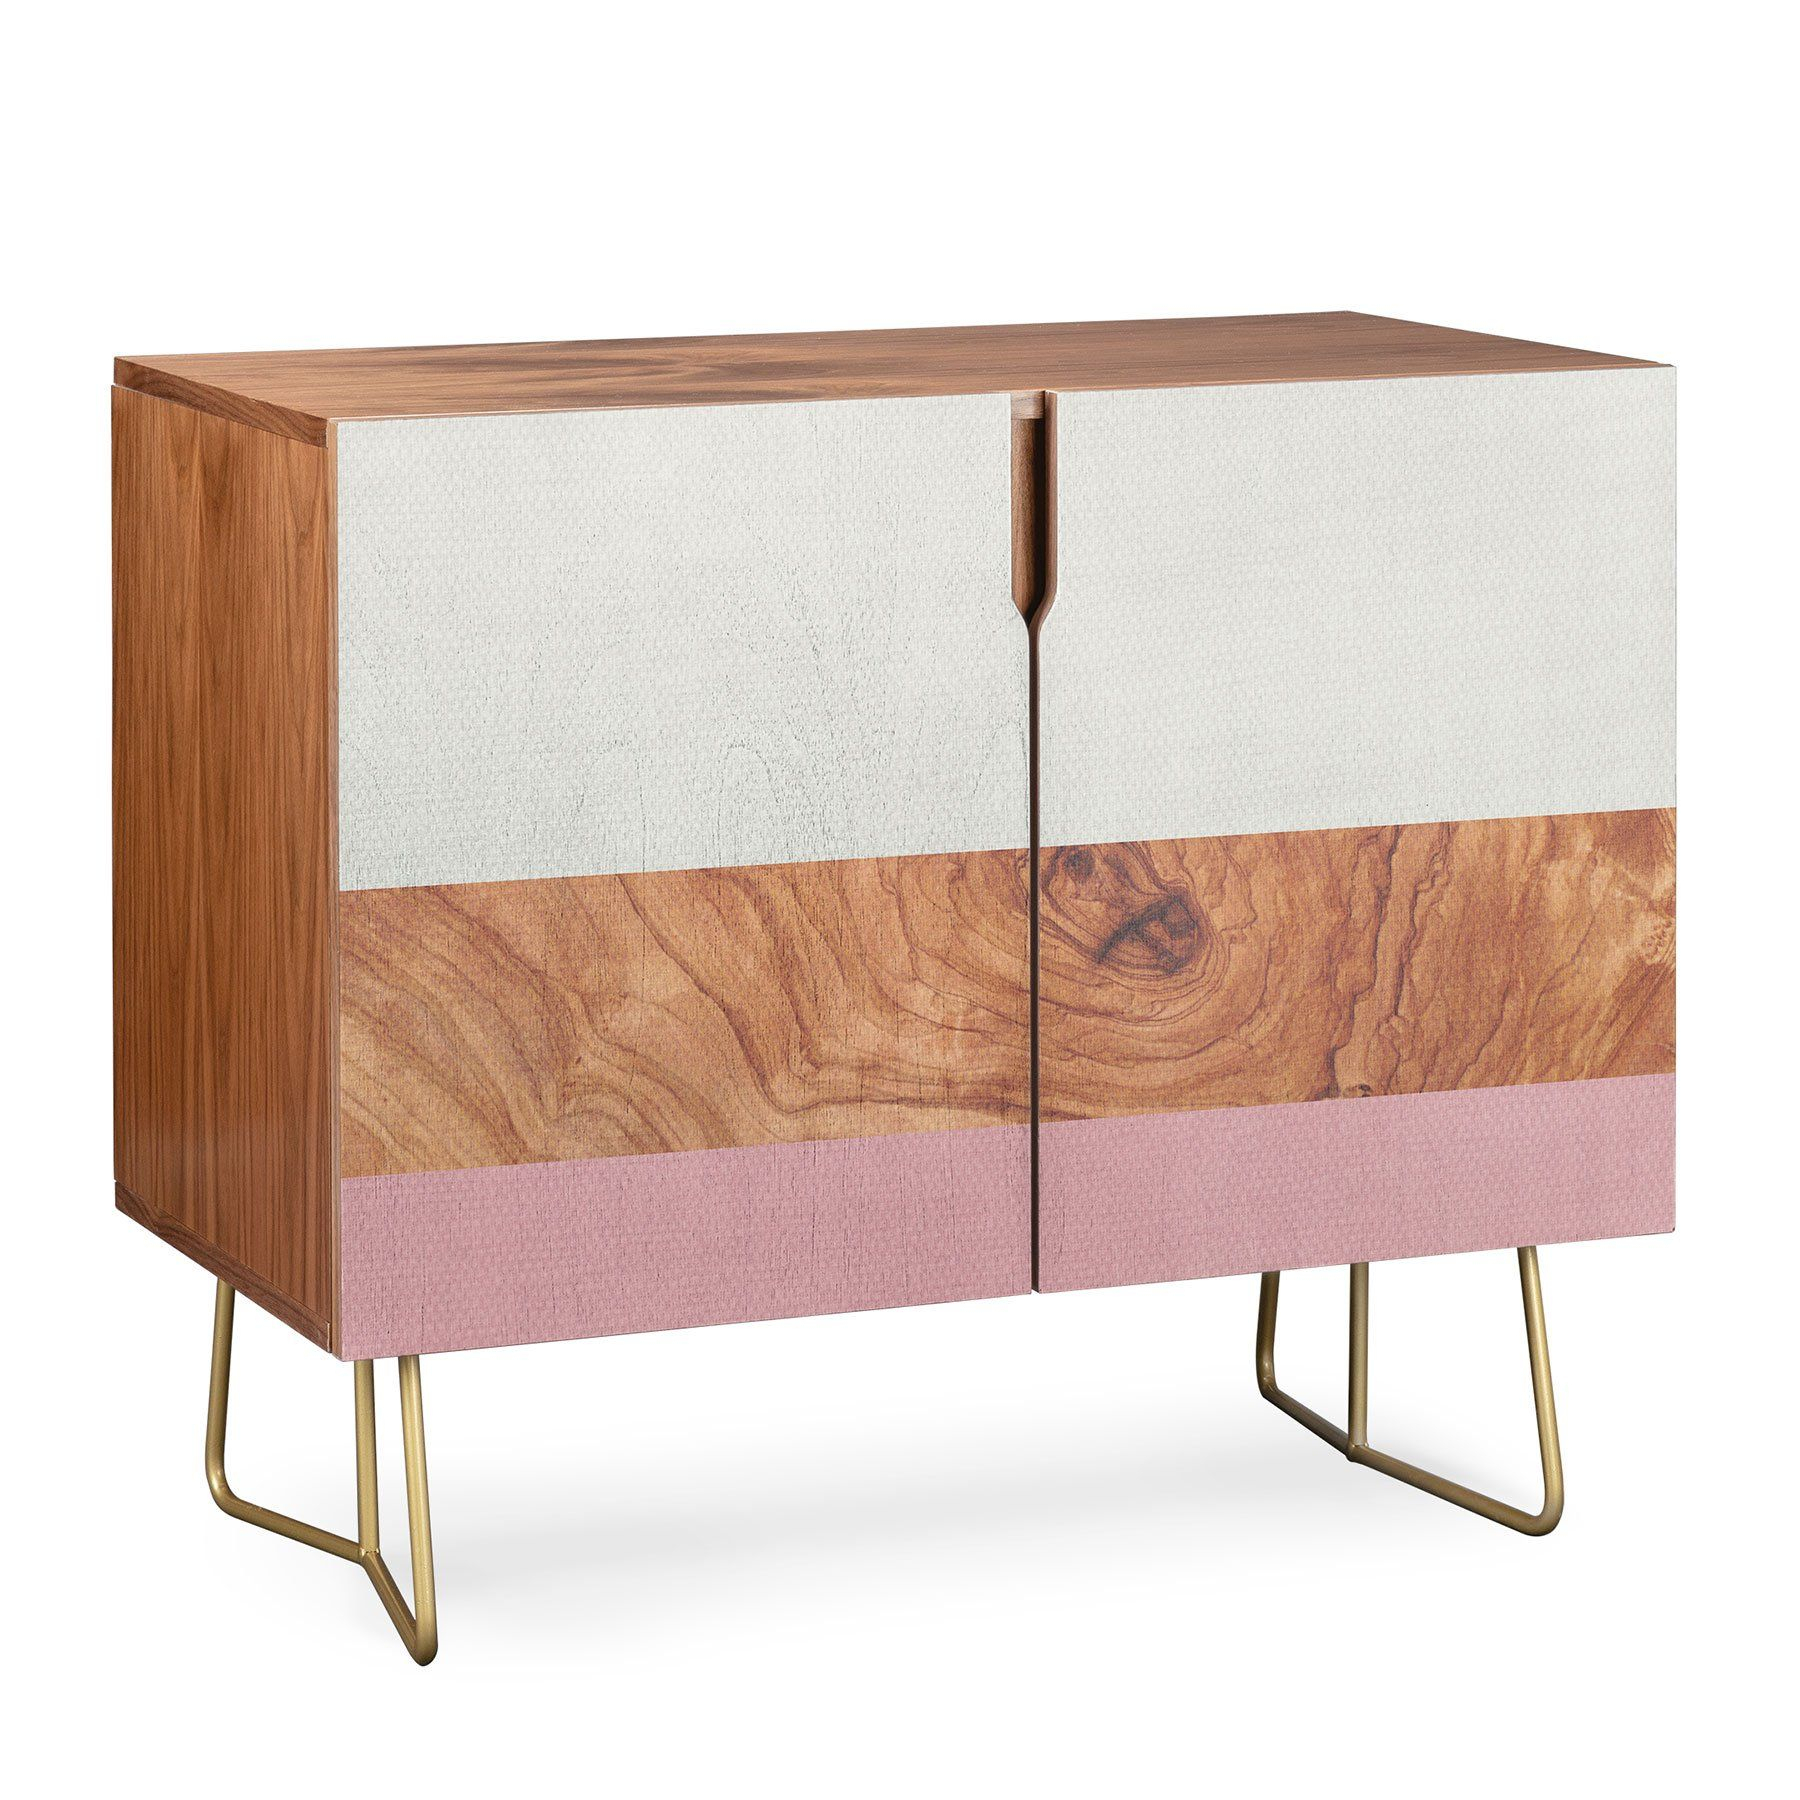 Deny Designs Line Geo Credenza (Birch Or Walnut, 2 Leg With Regard To Line Geo Credenzas (View 8 of 30)